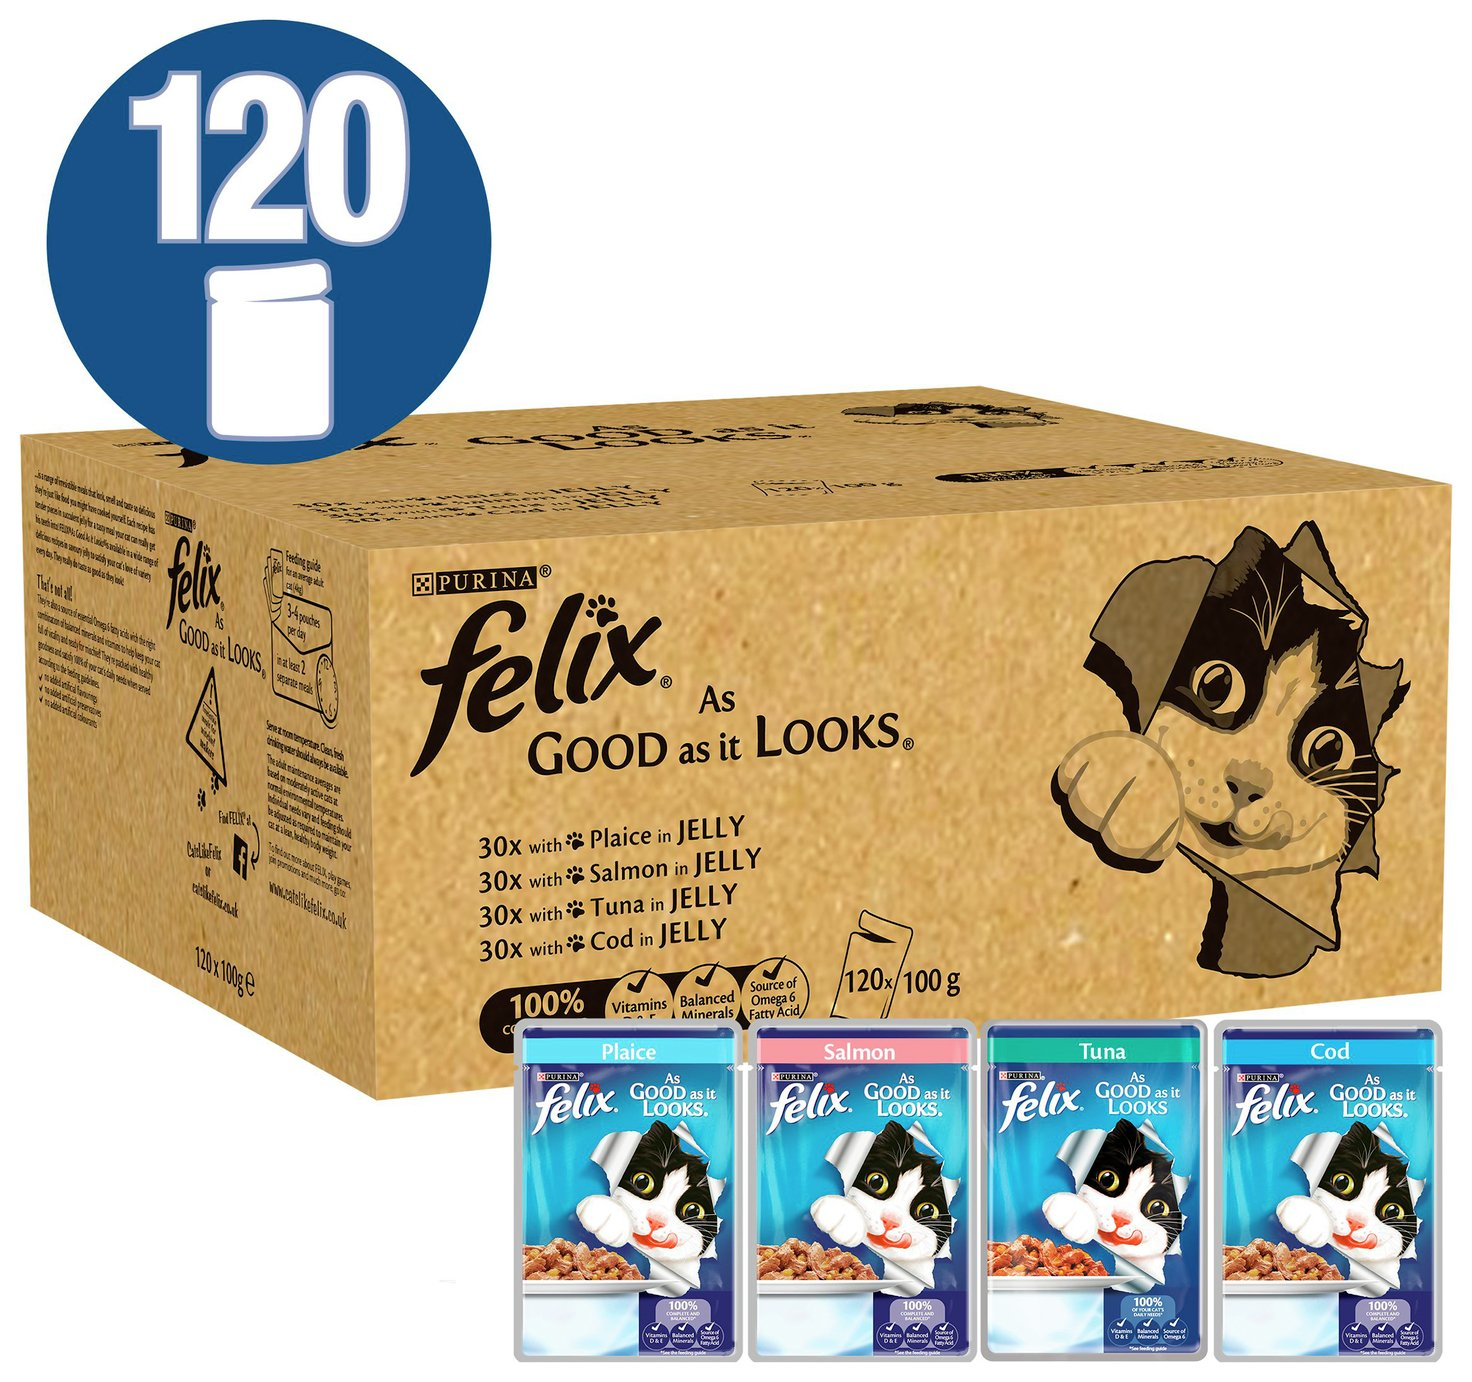 Felix As Good As It Looks Fish 120x100g review